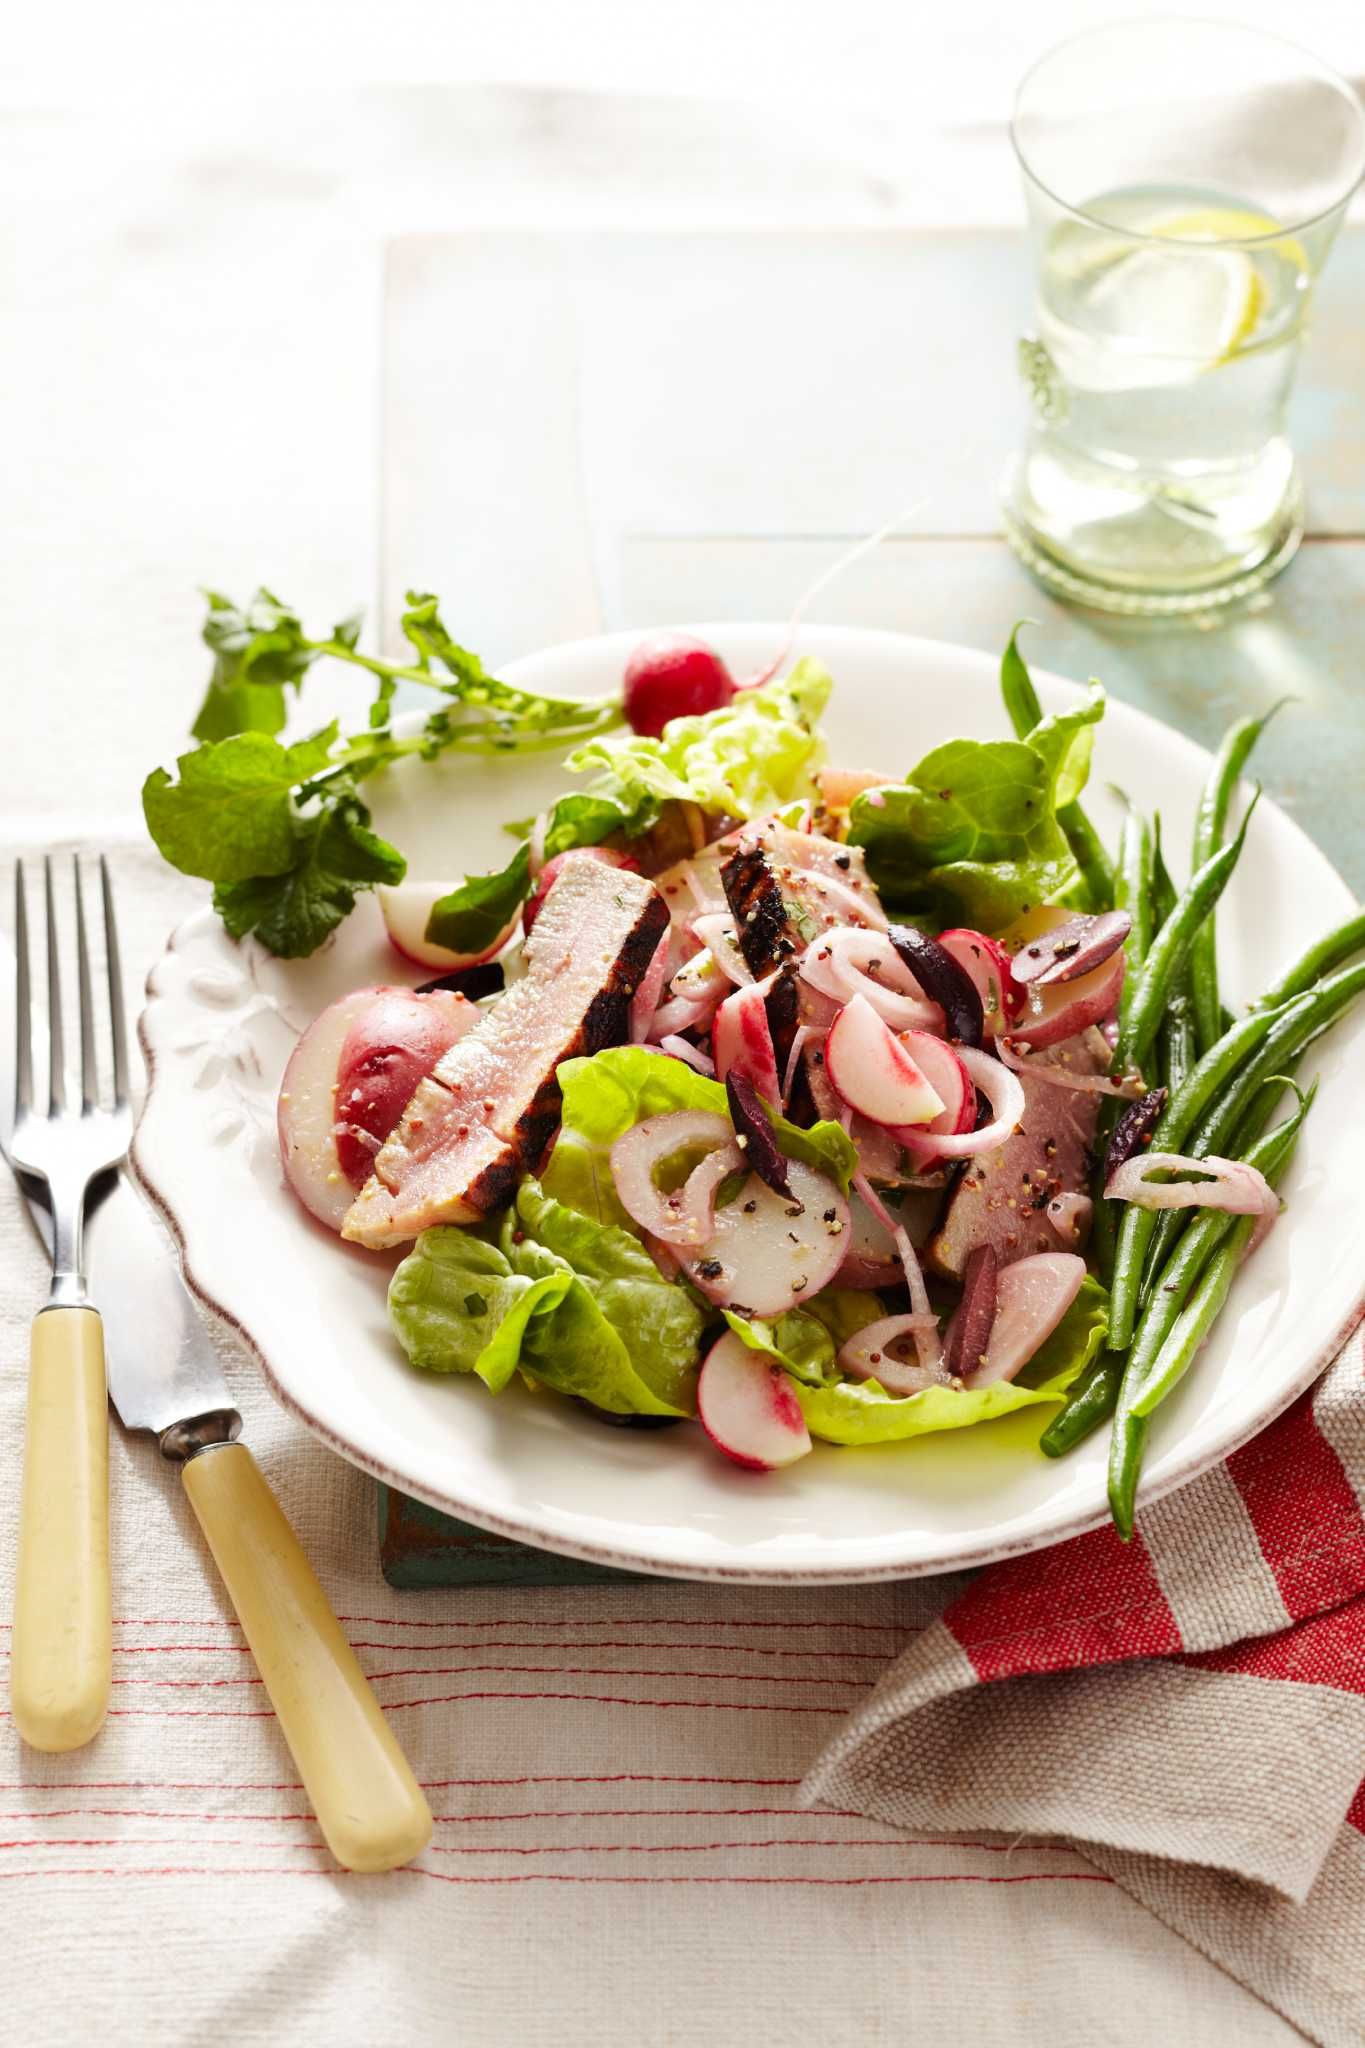 Salade Provençale with Tuna and Radishes